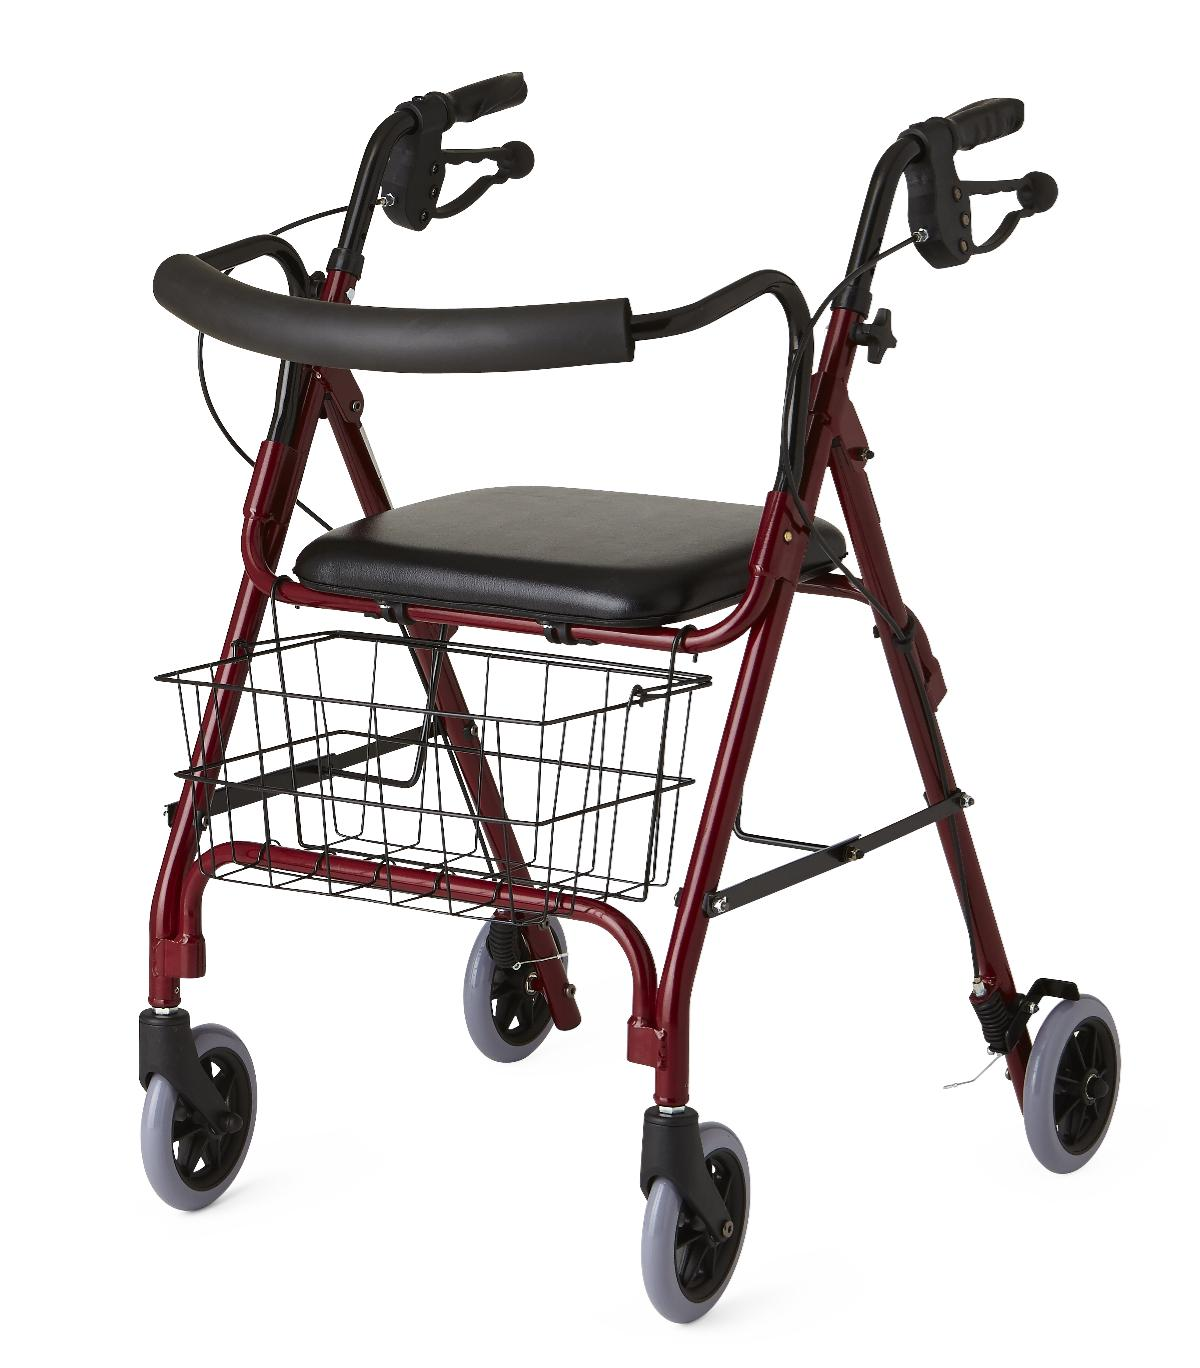 Medline Deluxe Rollator with Curved Back